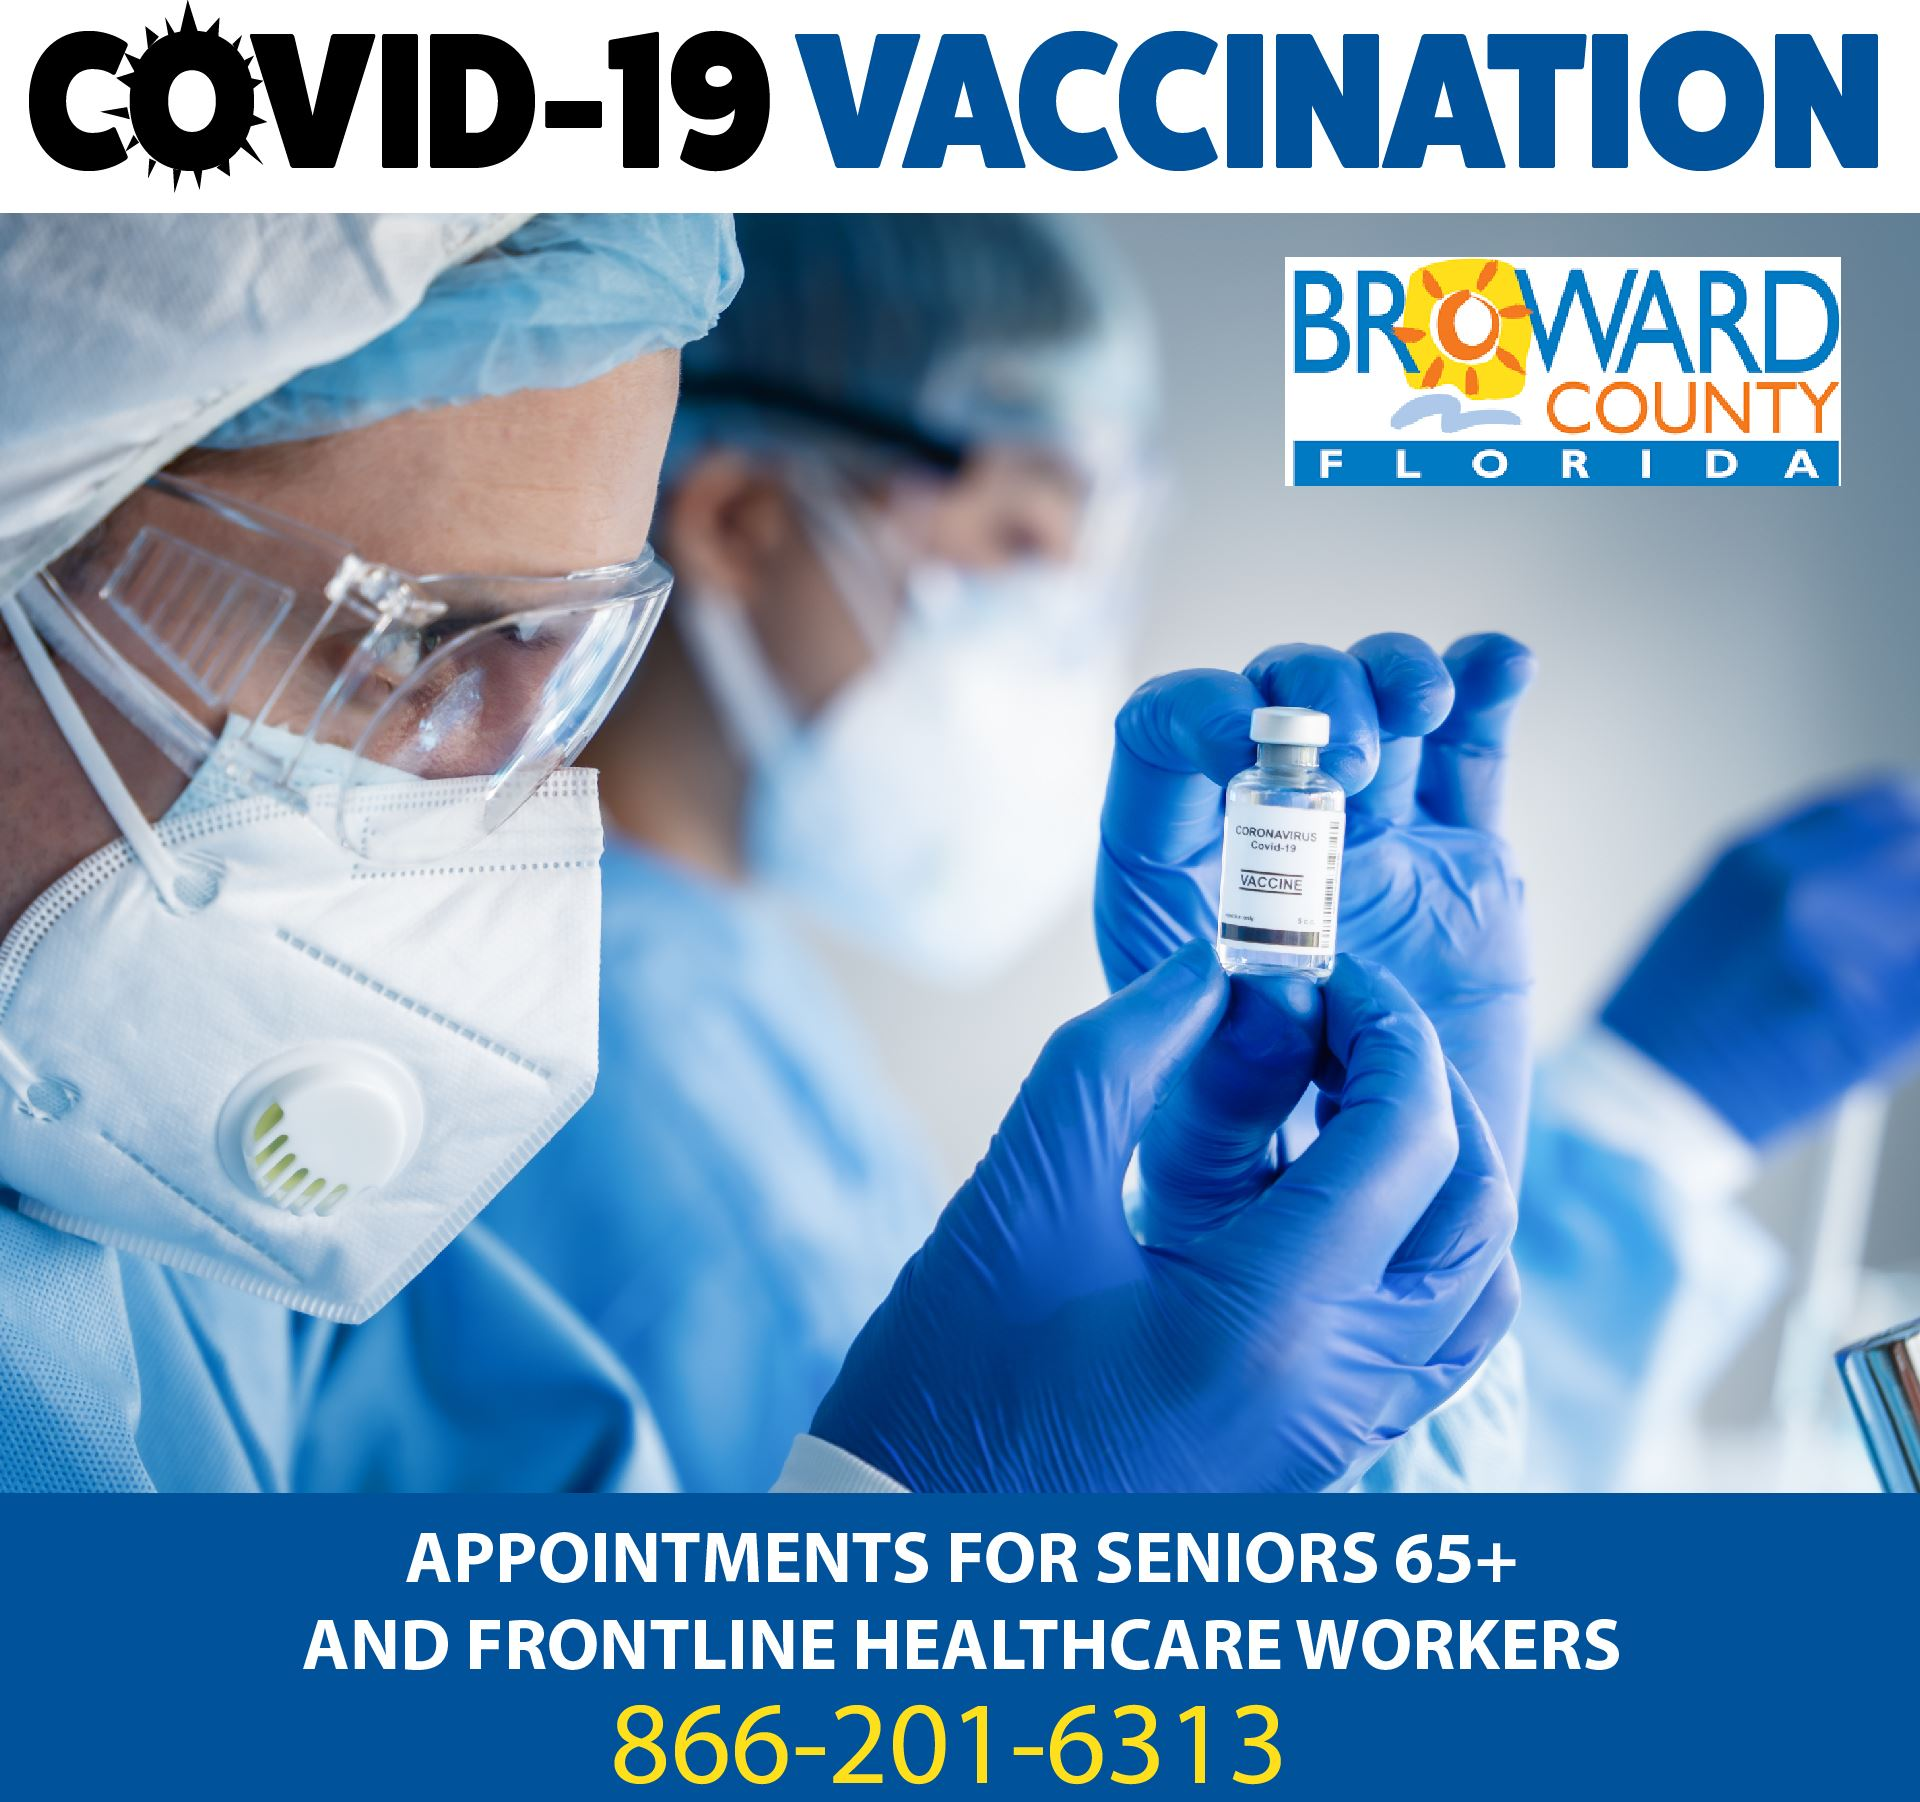 COVID19 Vaccine Appointments in Broward County